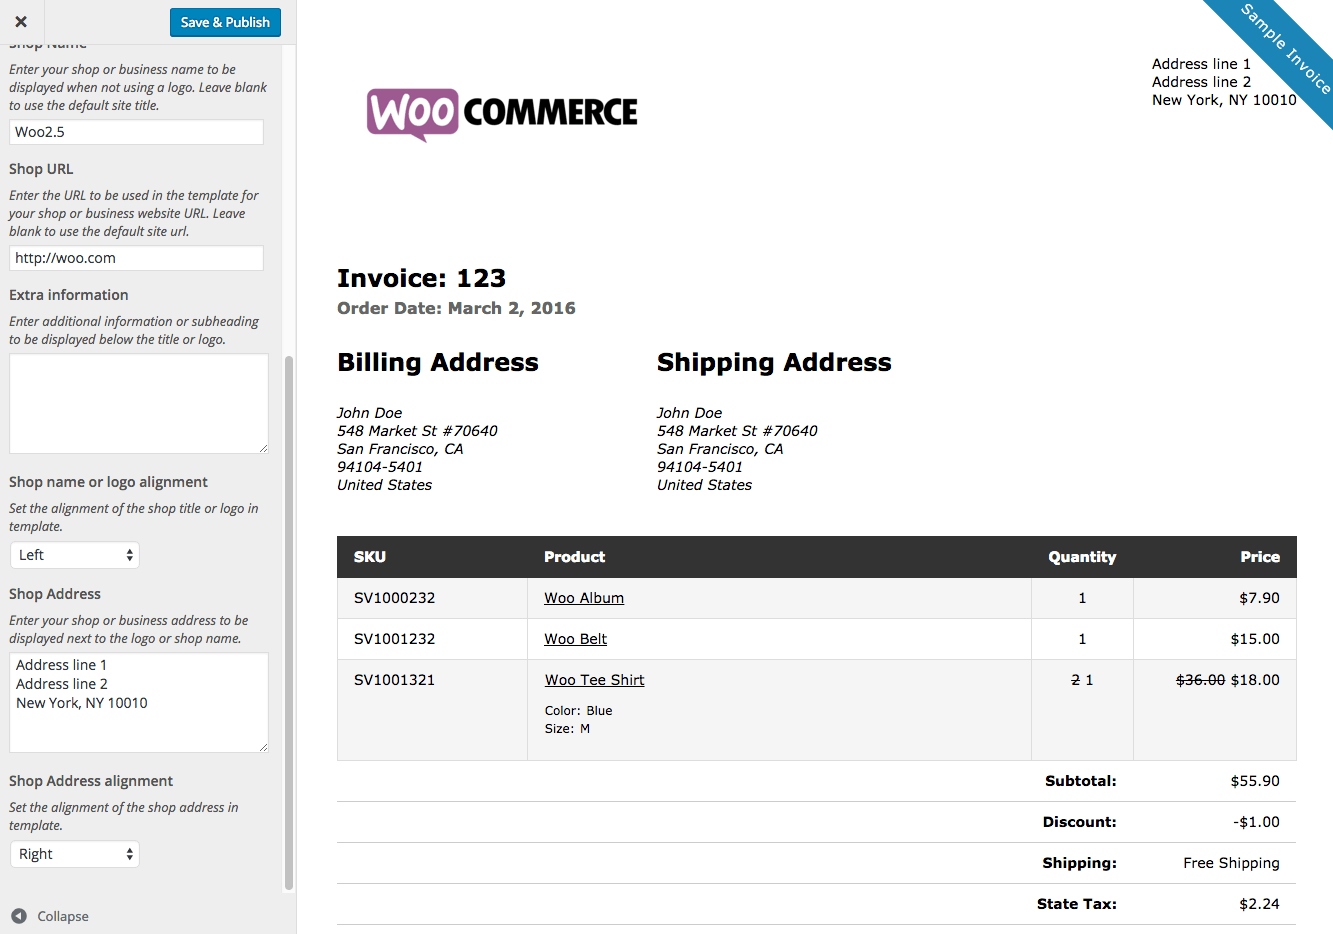 Ultrablogus  Winsome Print Invoices Amp Packing Lists  Woocommerce With Inspiring Woocommerce Print Invoices  Packing Lists Customizer With Delectable What Is Einvoicing Also Plumbers Invoice Template In Addition Invoice Software For Windows And Property Management Invoice As Well As Mazda Cx Invoice Additionally Freelance Invoice Software From Woocommercecom With Ultrablogus  Inspiring Print Invoices Amp Packing Lists  Woocommerce With Delectable Woocommerce Print Invoices  Packing Lists Customizer And Winsome What Is Einvoicing Also Plumbers Invoice Template In Addition Invoice Software For Windows From Woocommercecom